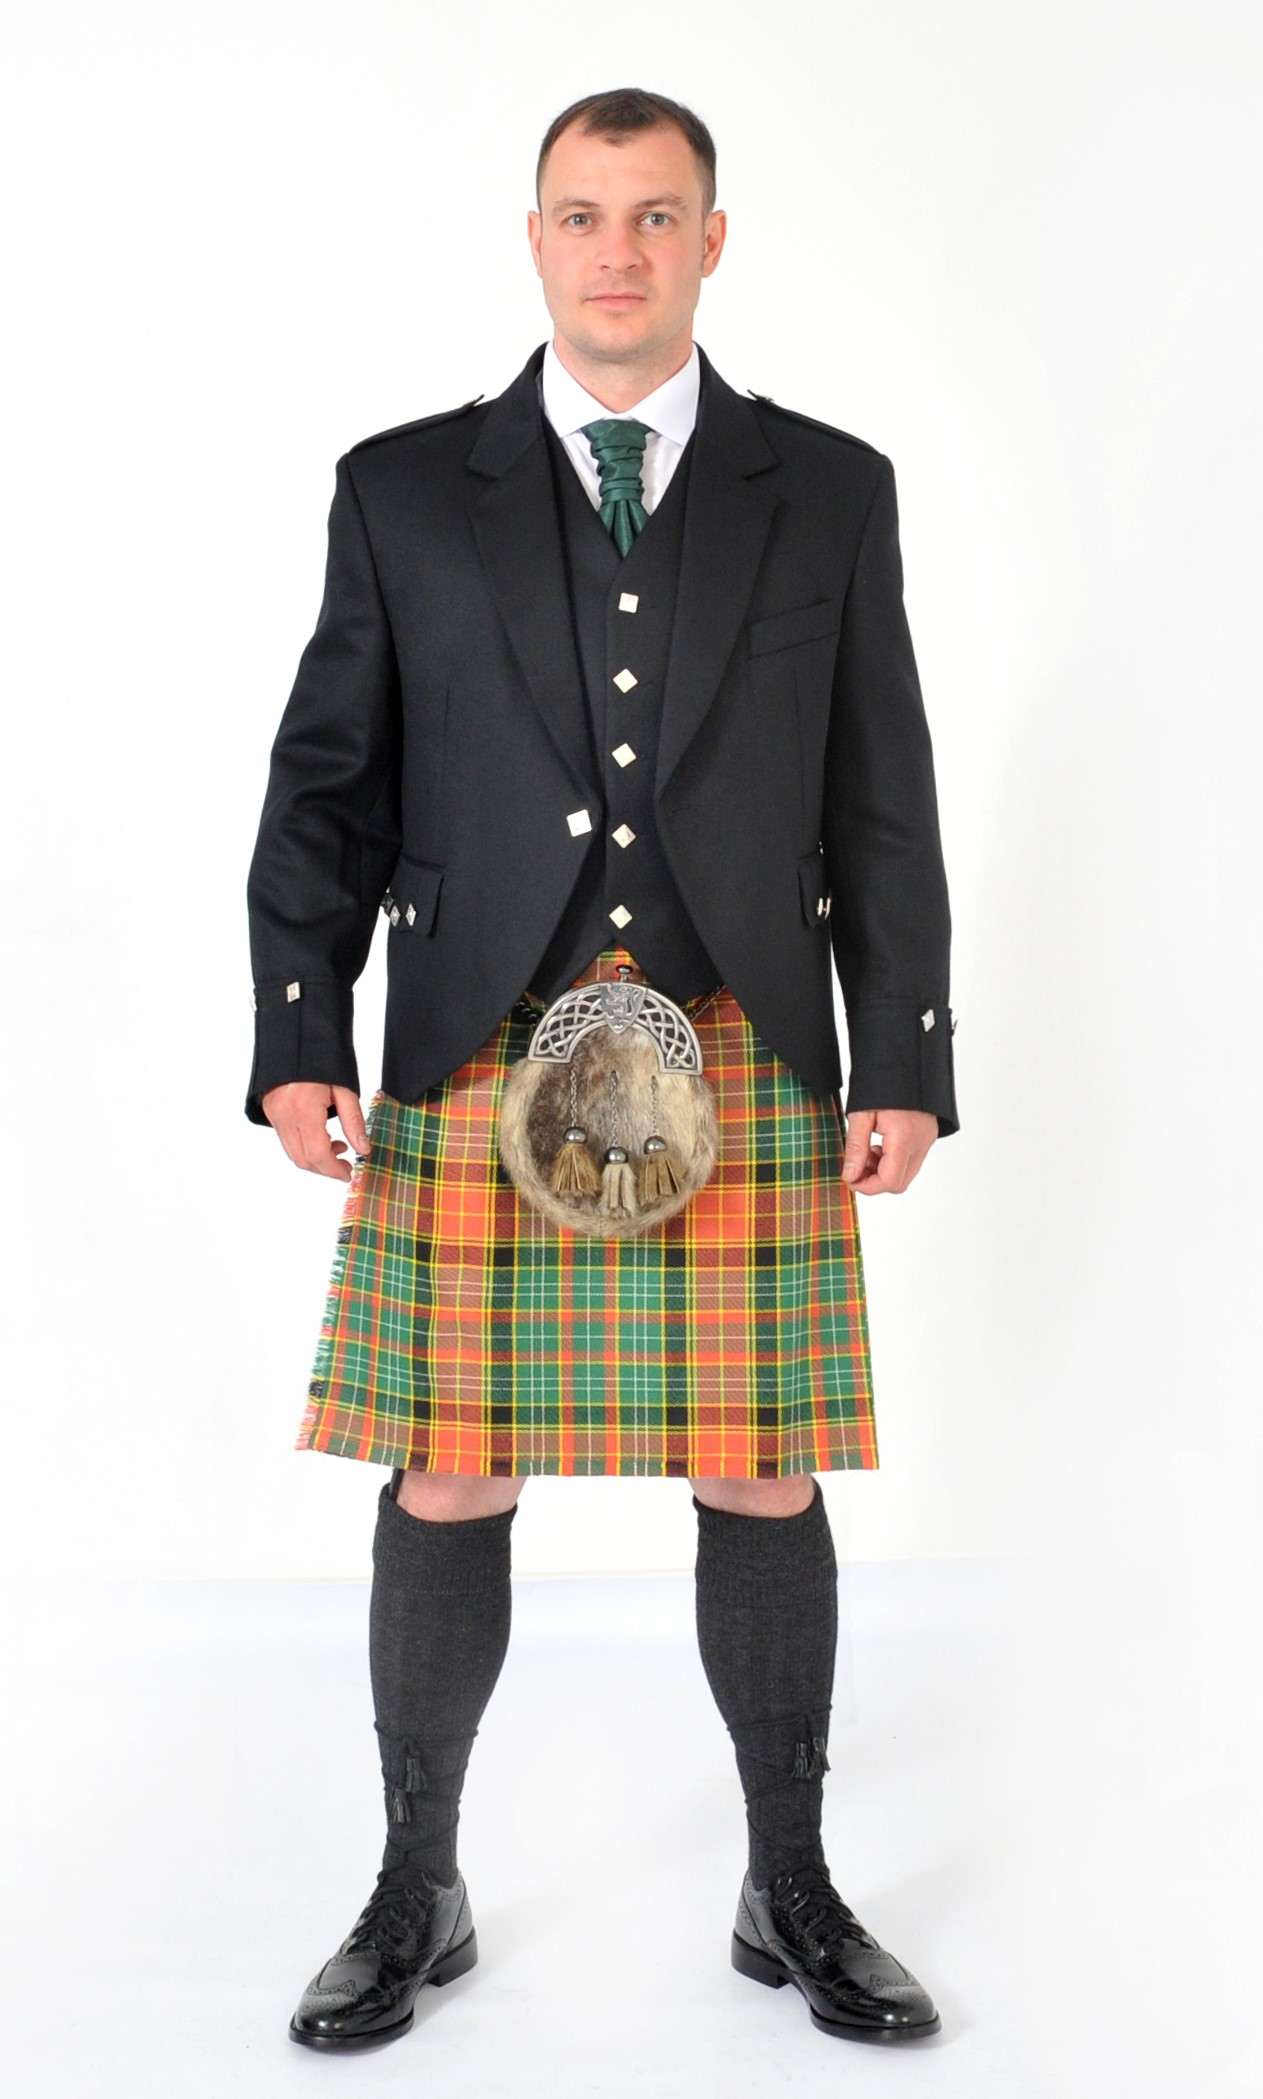 c2017cb0c6ff CLICK HERE TO ASK A QUESTION ABOUT THIS PRODUCT Call us on 01475 72 36 77.   843.32 713.38. Full Highland Dress Package. Includes our bespoke handmade 5  yard ...